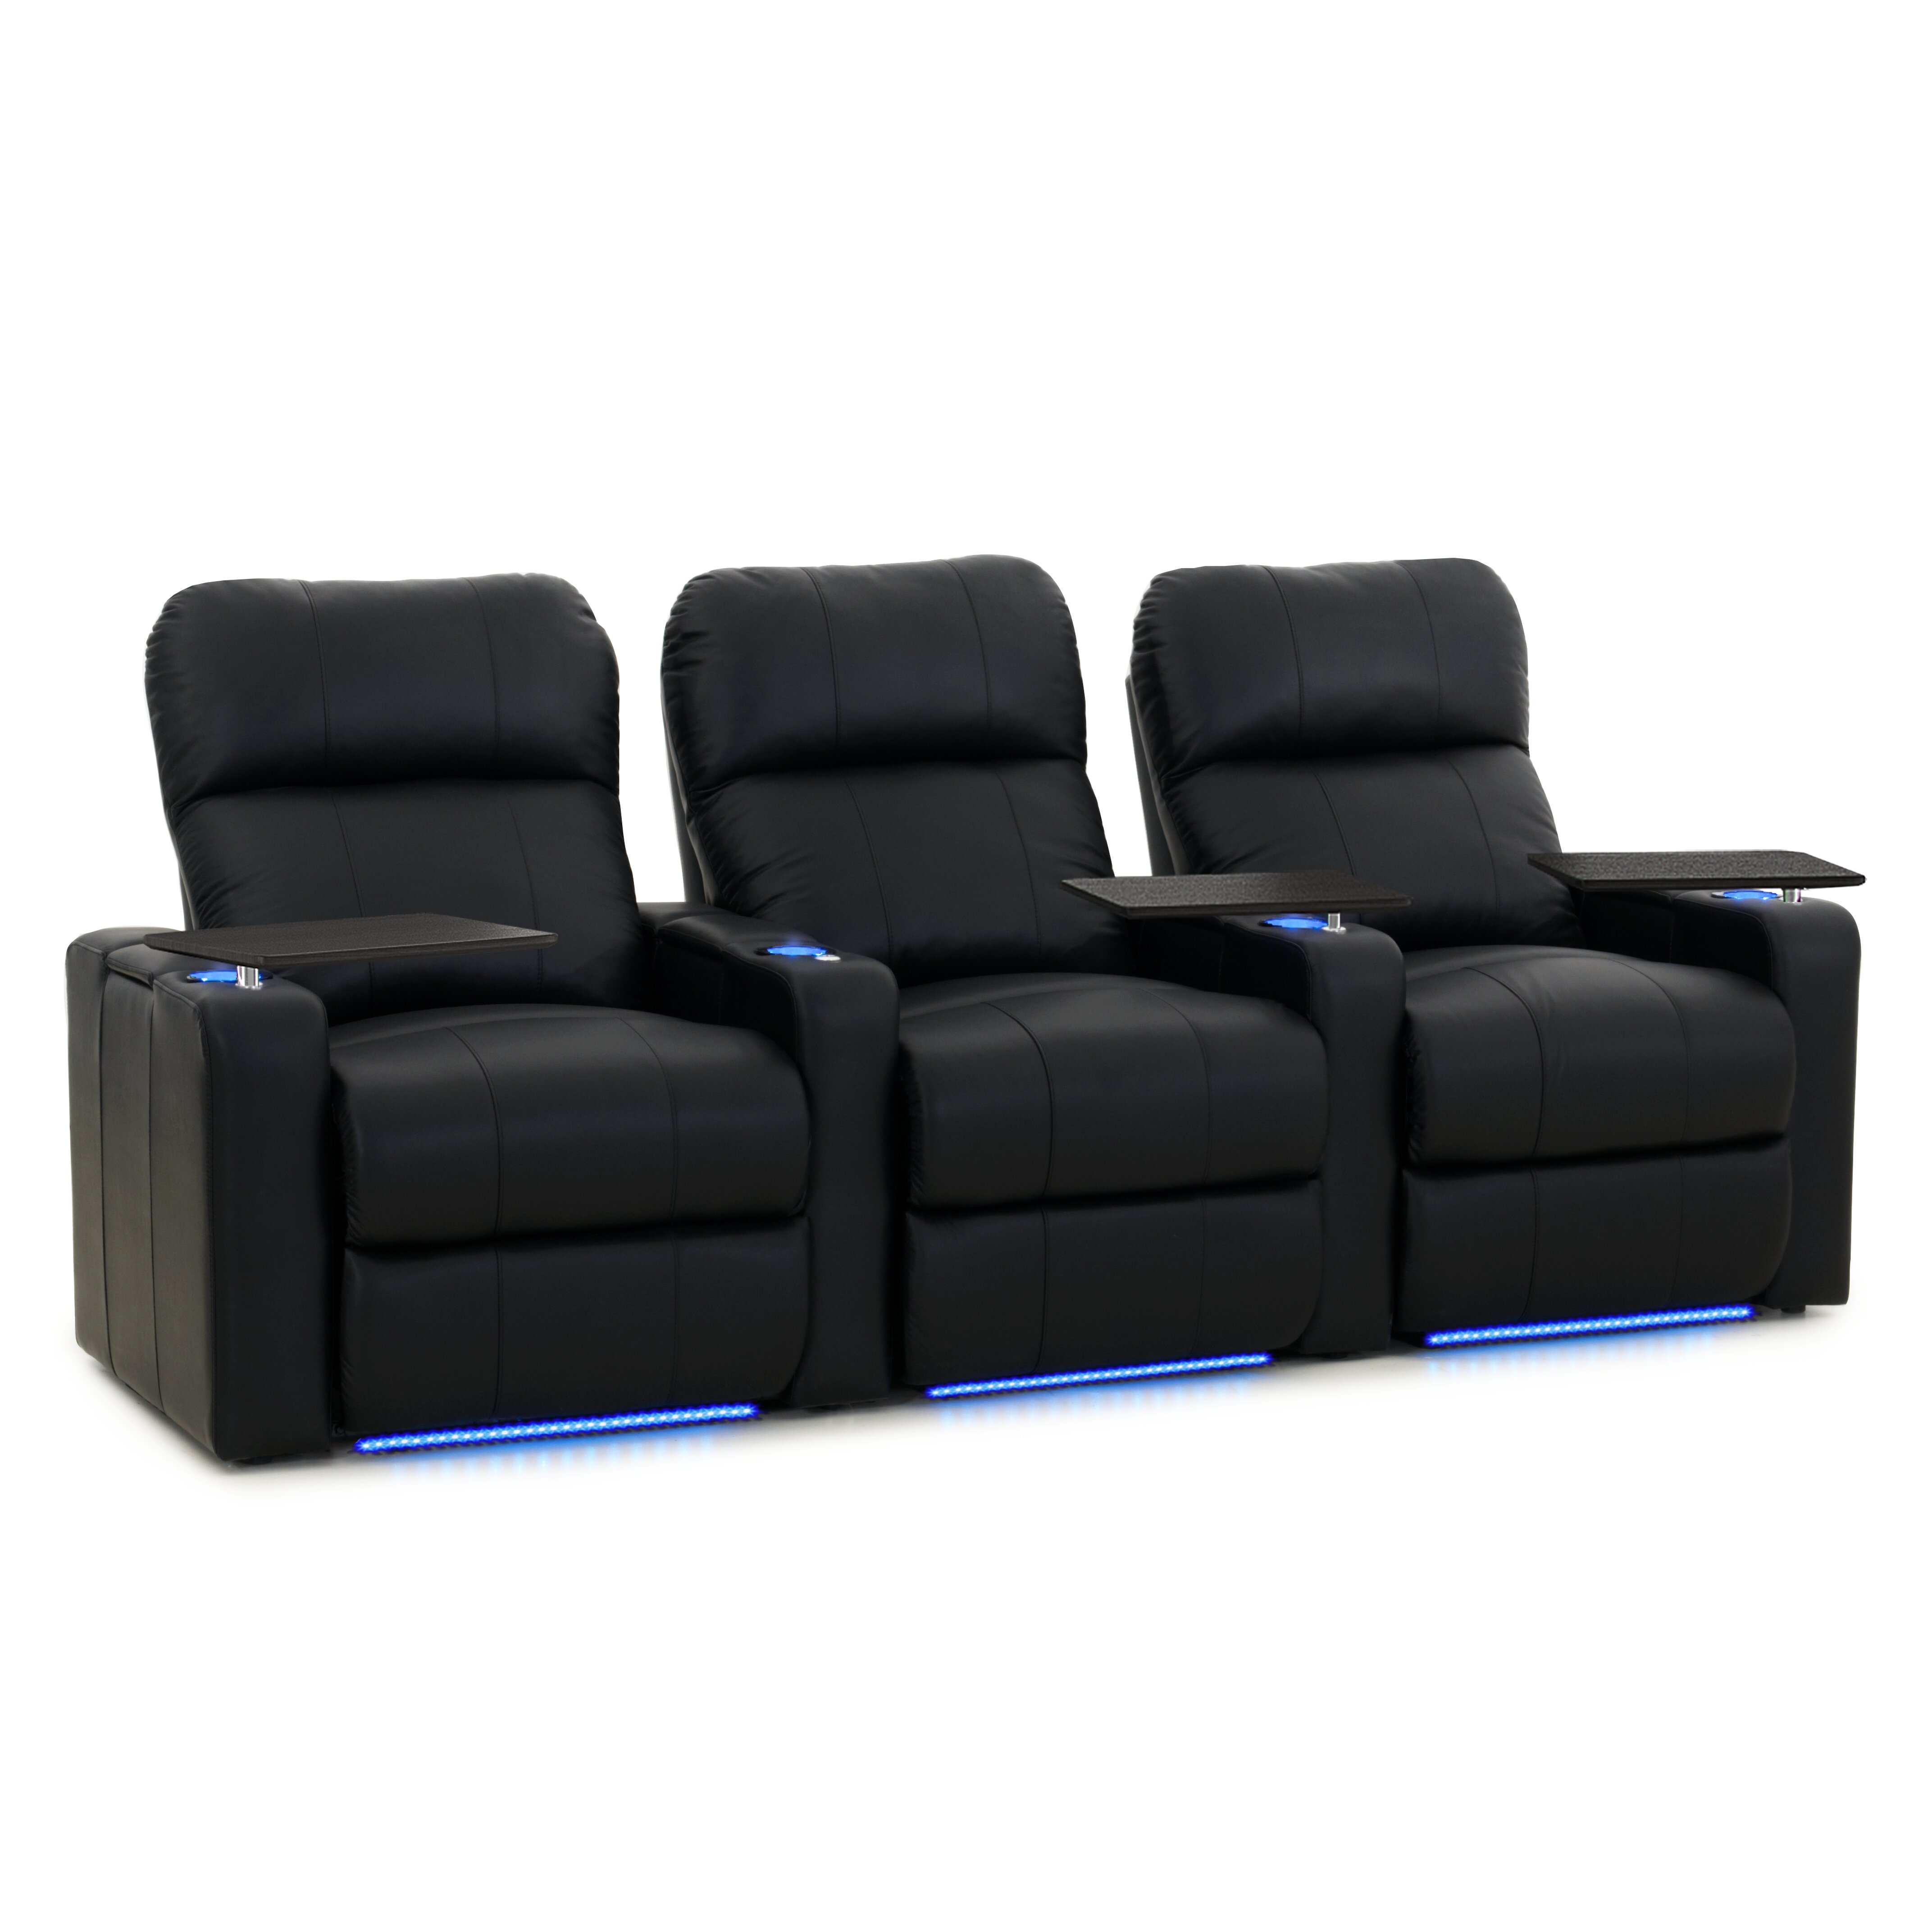 Mattress Toppers Twin Xl OctaneSeating Turbo XL700 Home Theater Recliner (Row of 3 ...